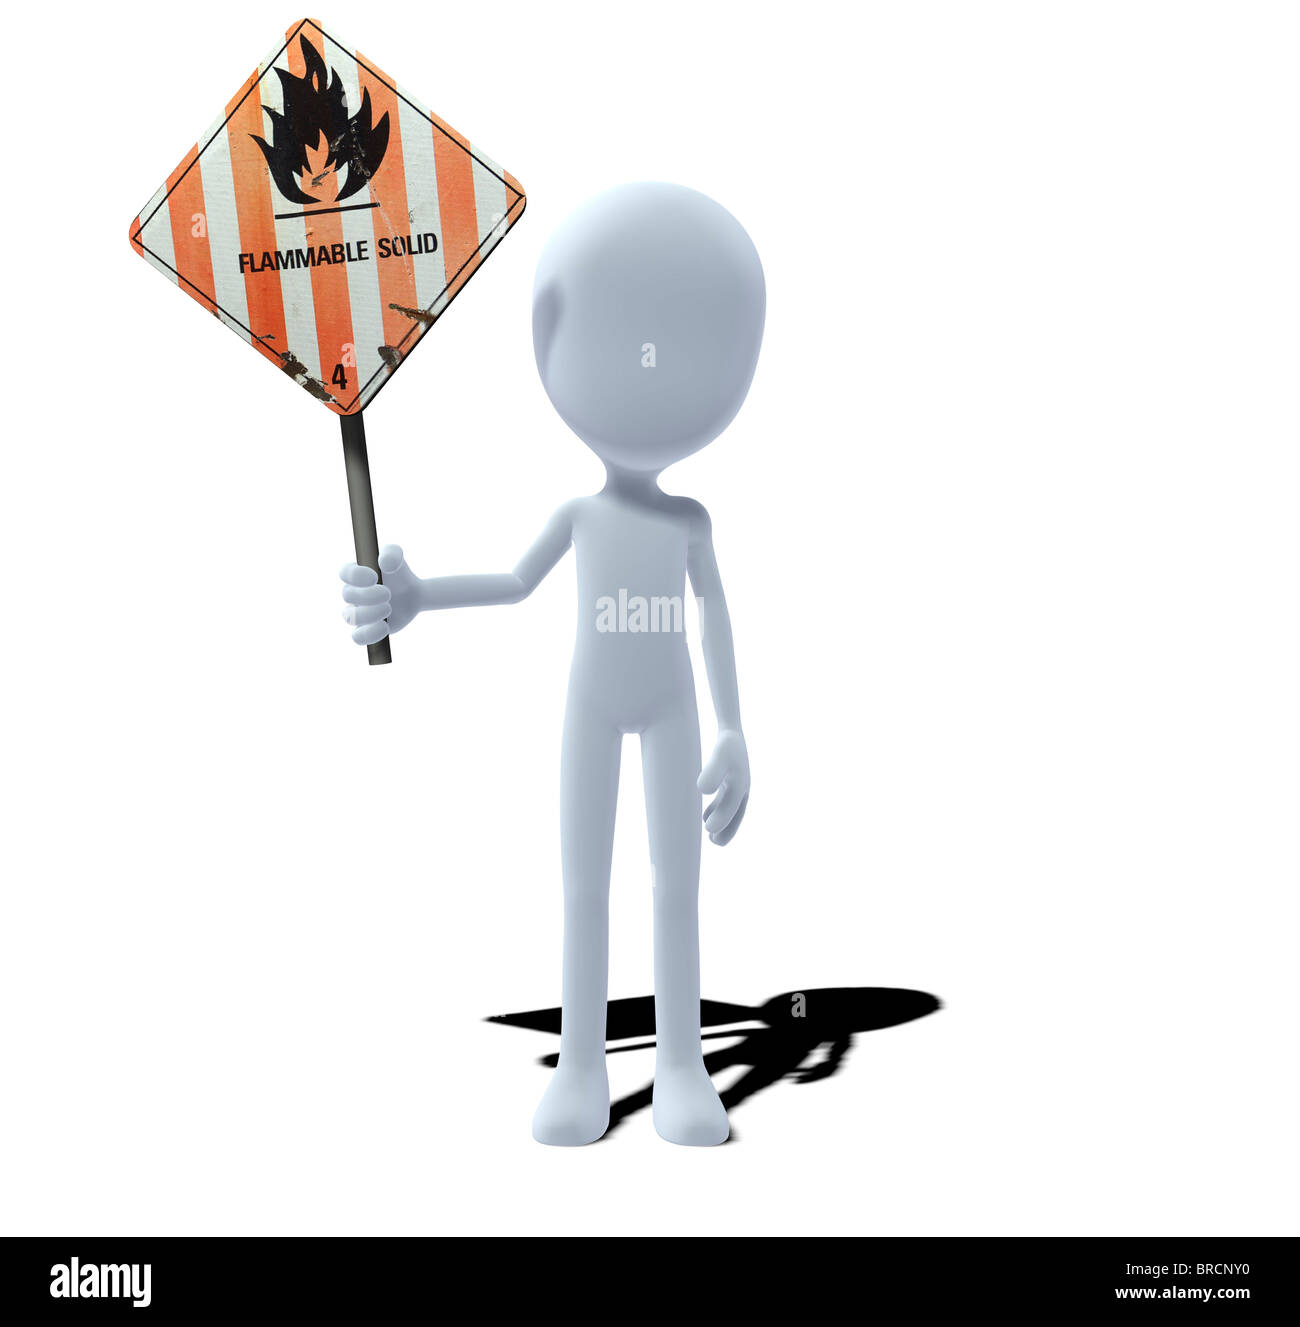 concept figure with warning sign flammable solids - Stock Image